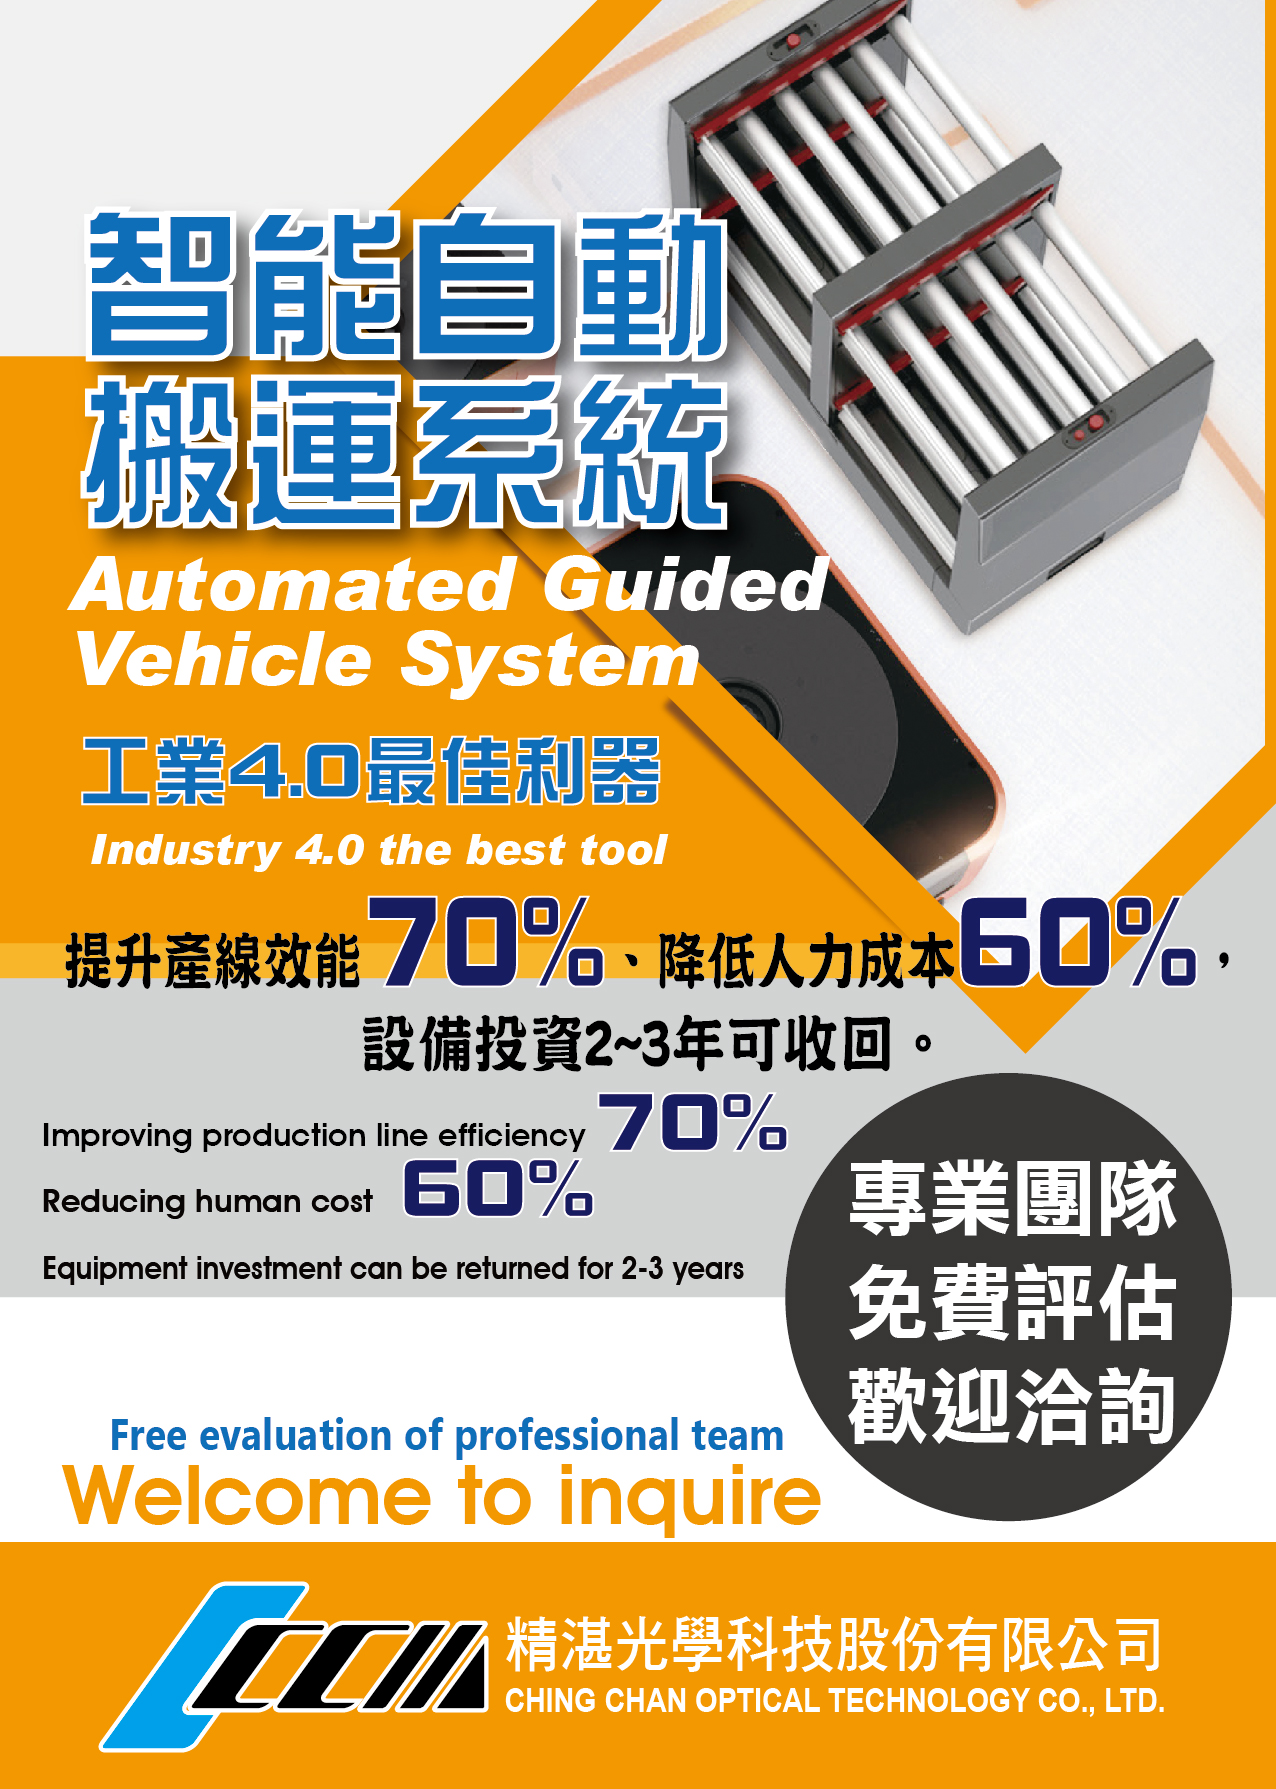 CHING CHAN OPTICAL TECHNOLOGY CO., LTD. (CCM) Online Catalogues